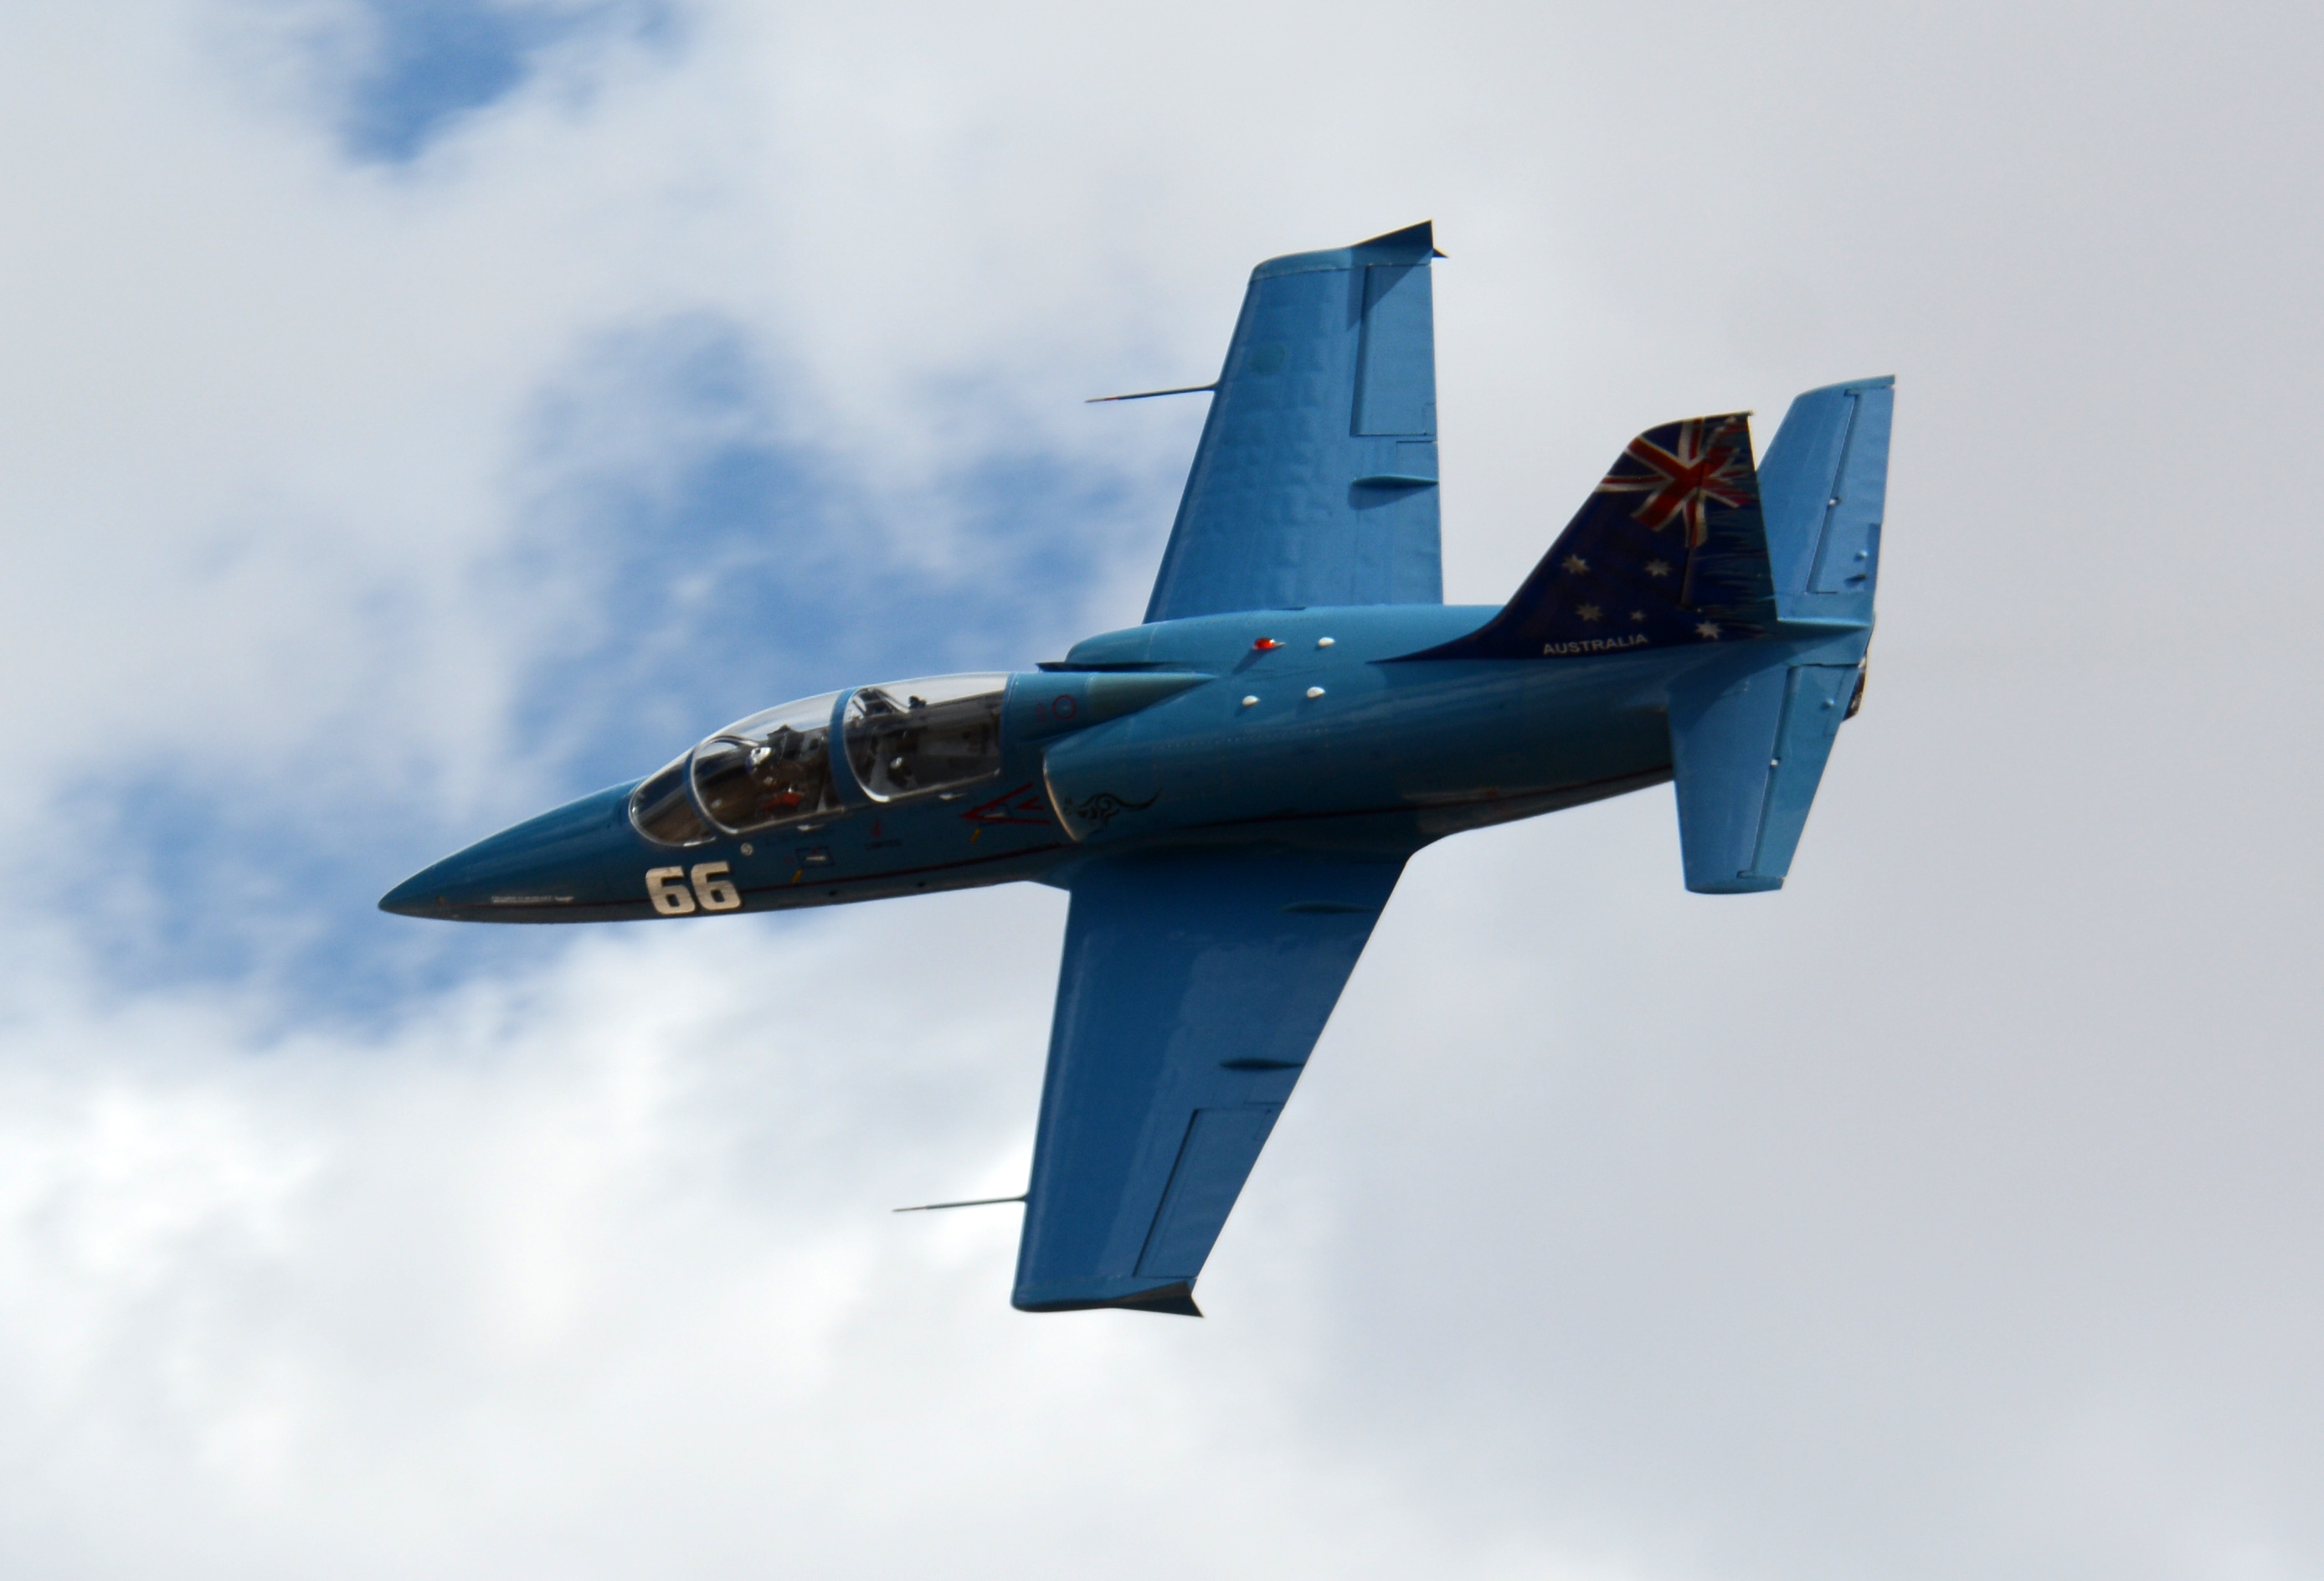 66 L 39 Albatros VH IJC True Blue Reno Air Races 2014 photo D Ramey Logan